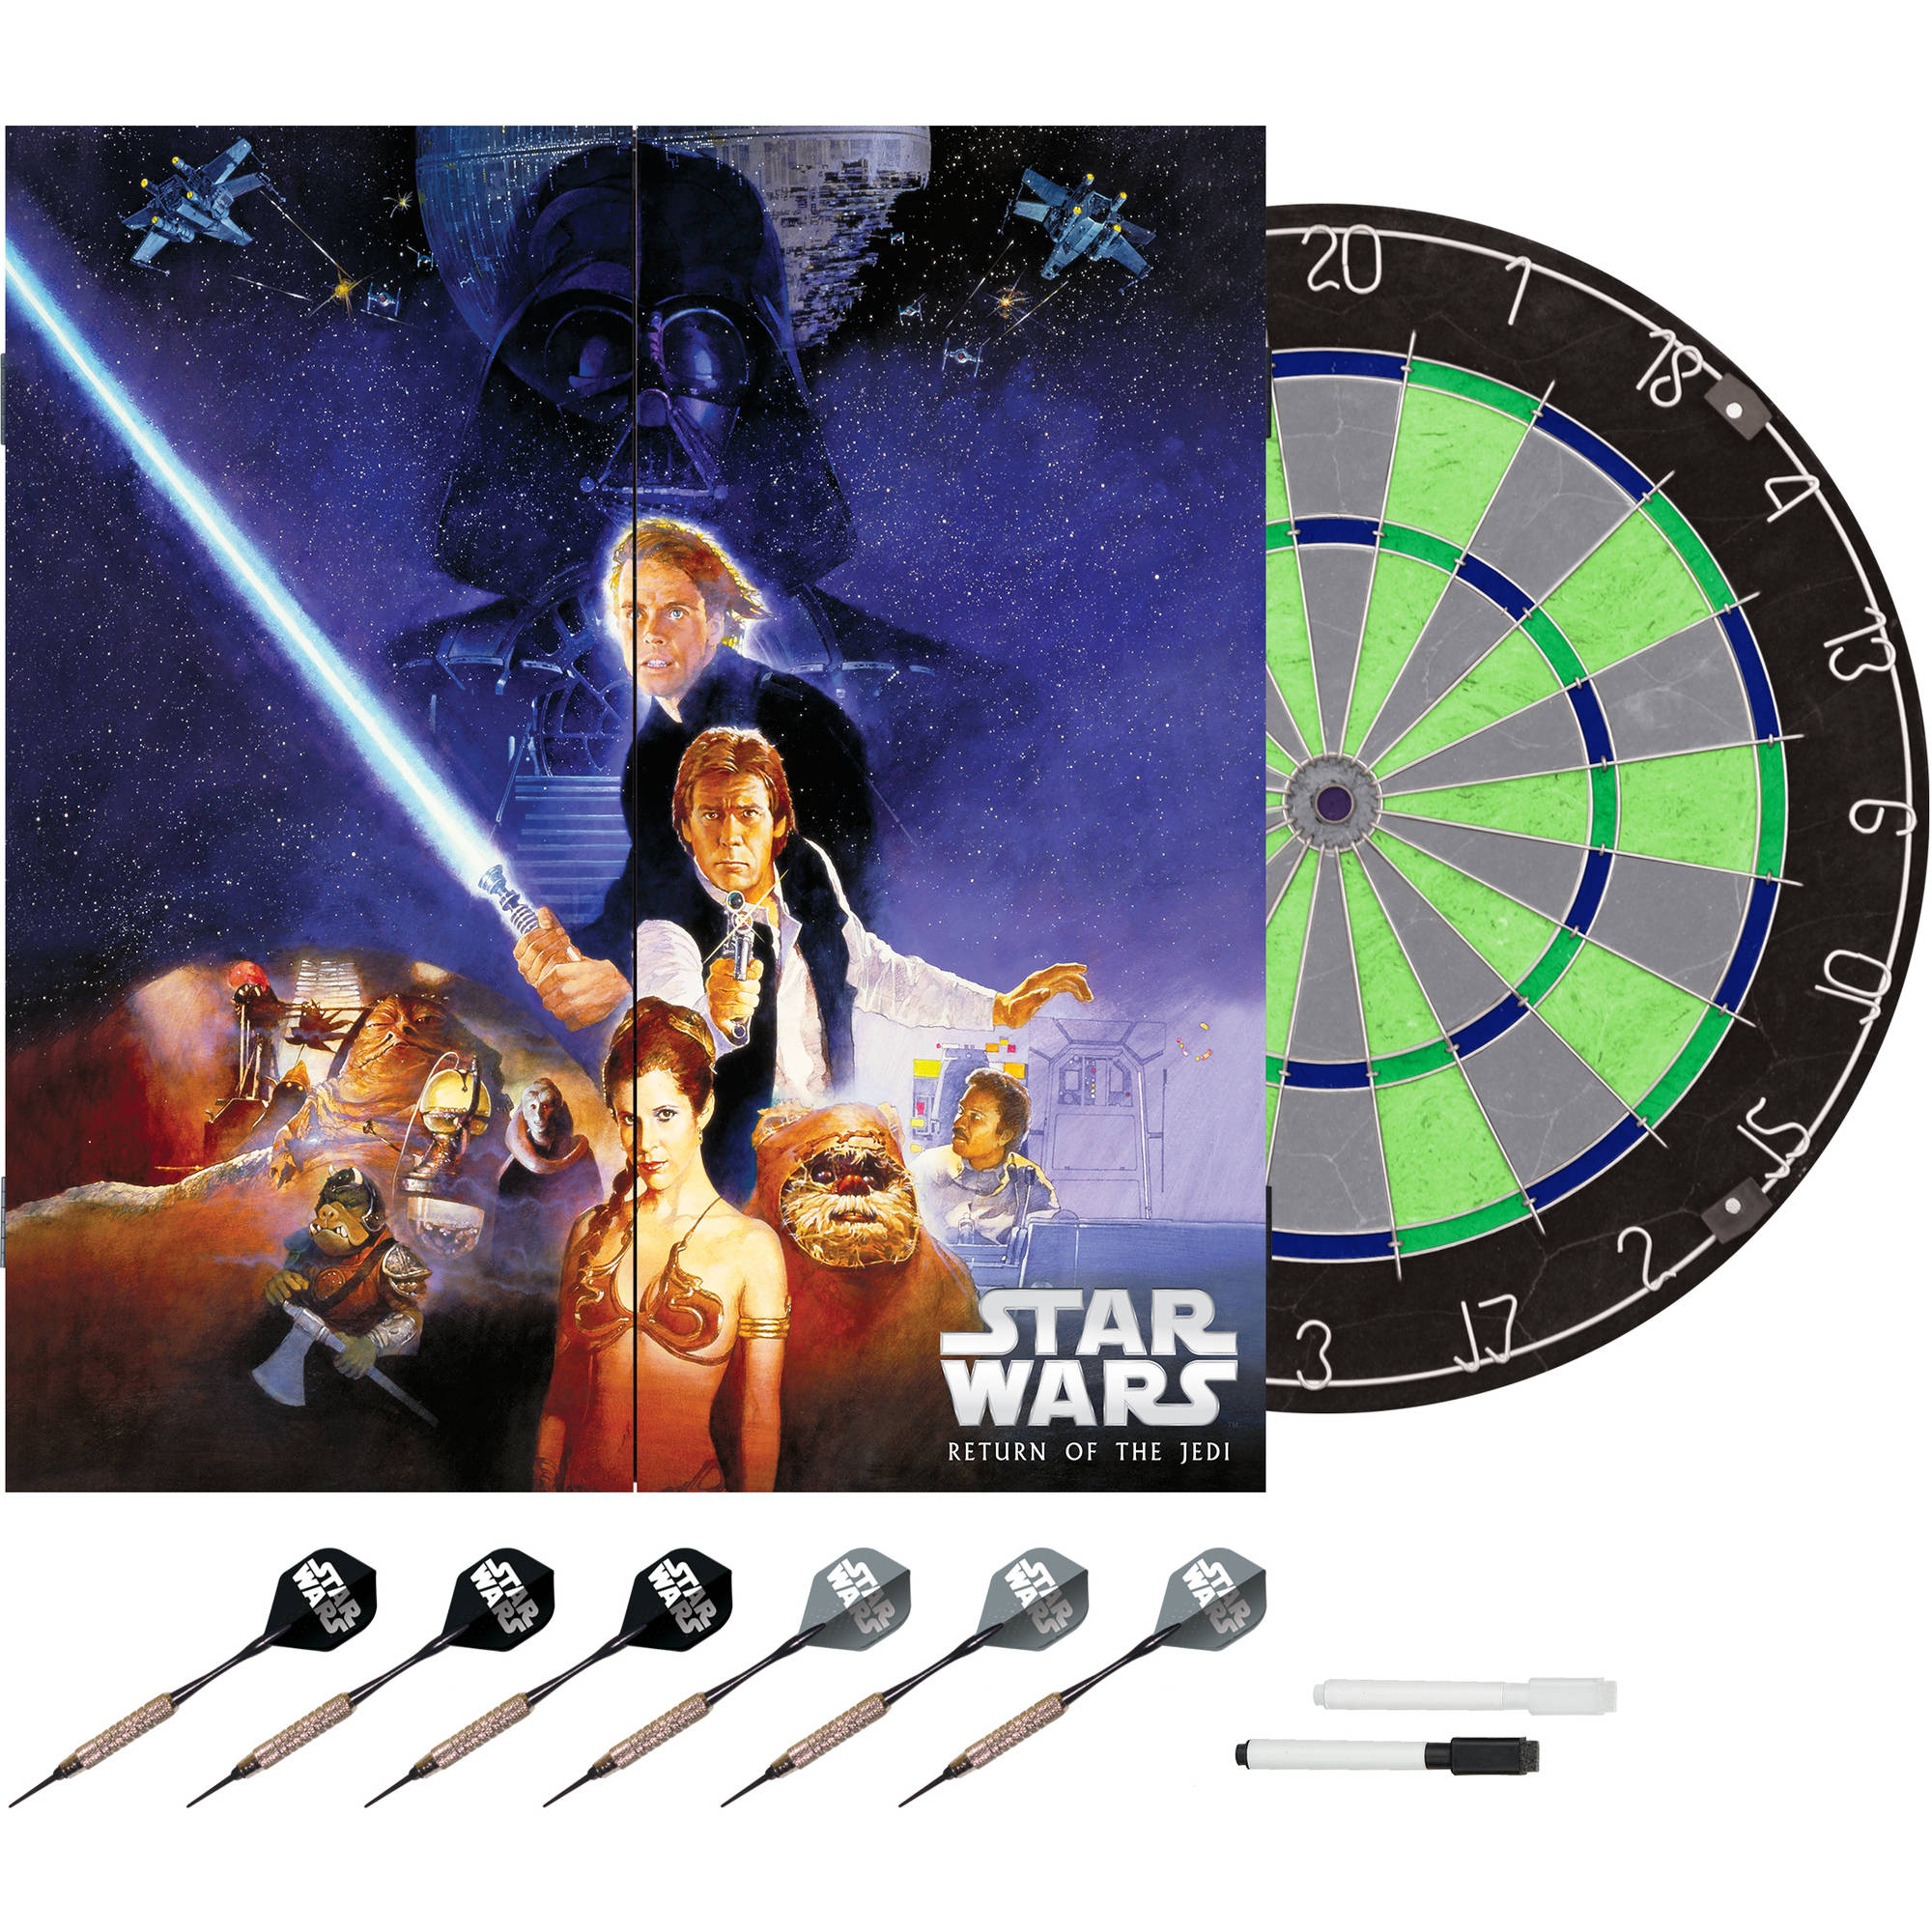 Limited Edition Star Wars The Return of the Jedi Bristle Dartboard with Cabinet